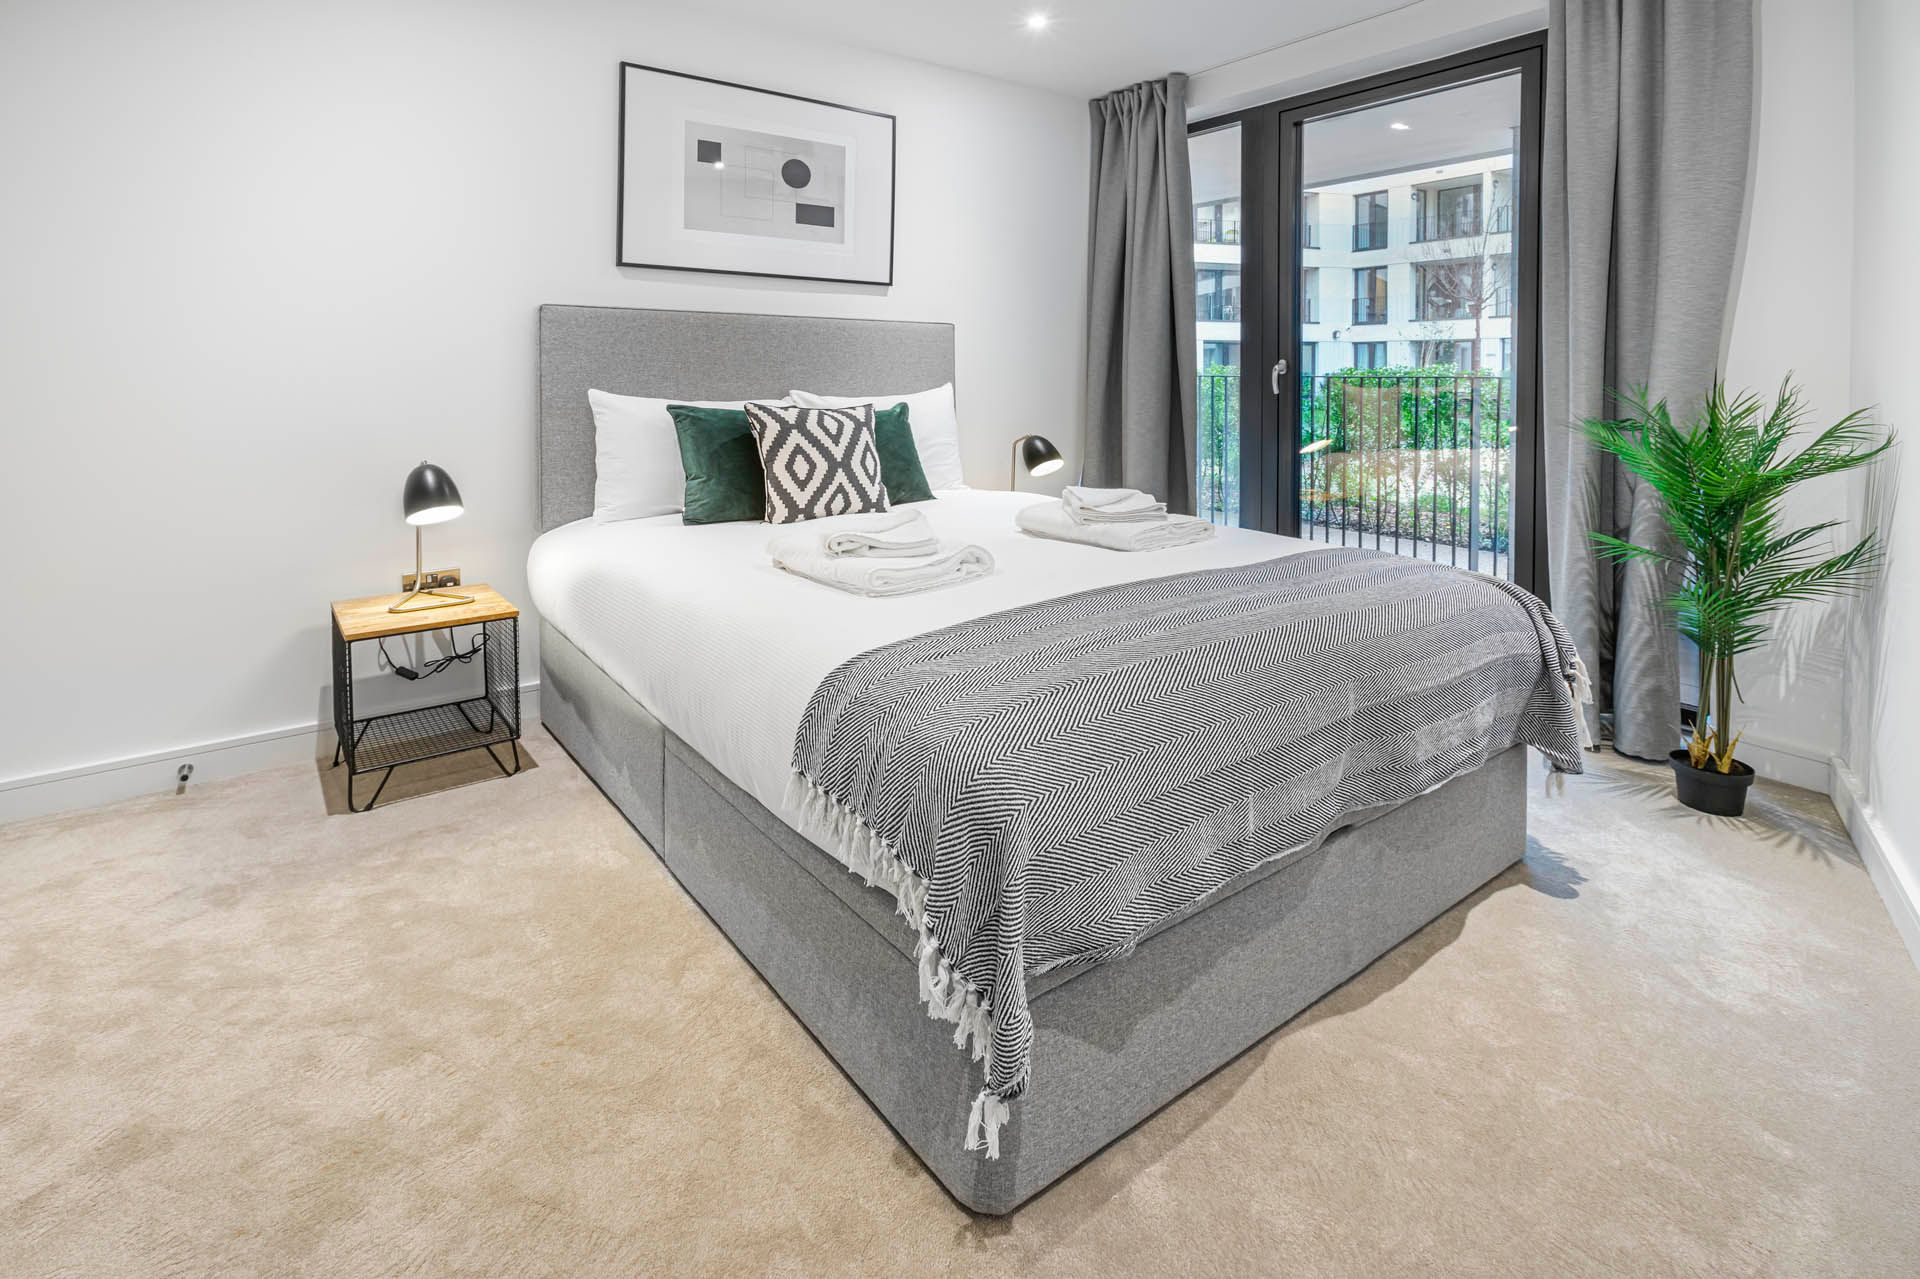 2 Bedroom apartment to rent in London SHO-RO-0002